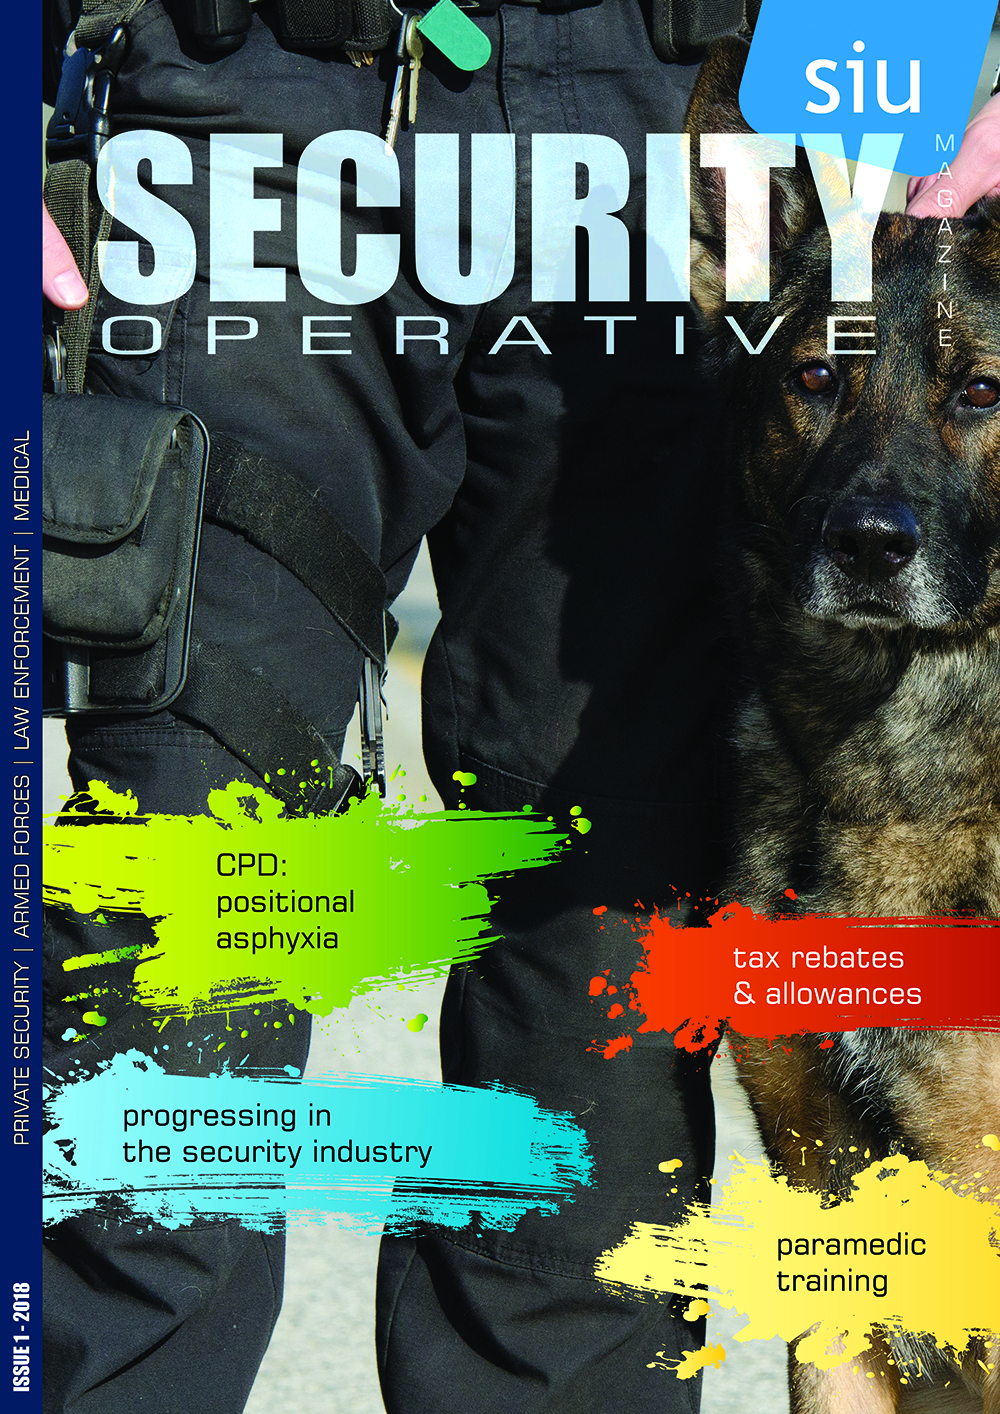 Security Operative Magazine